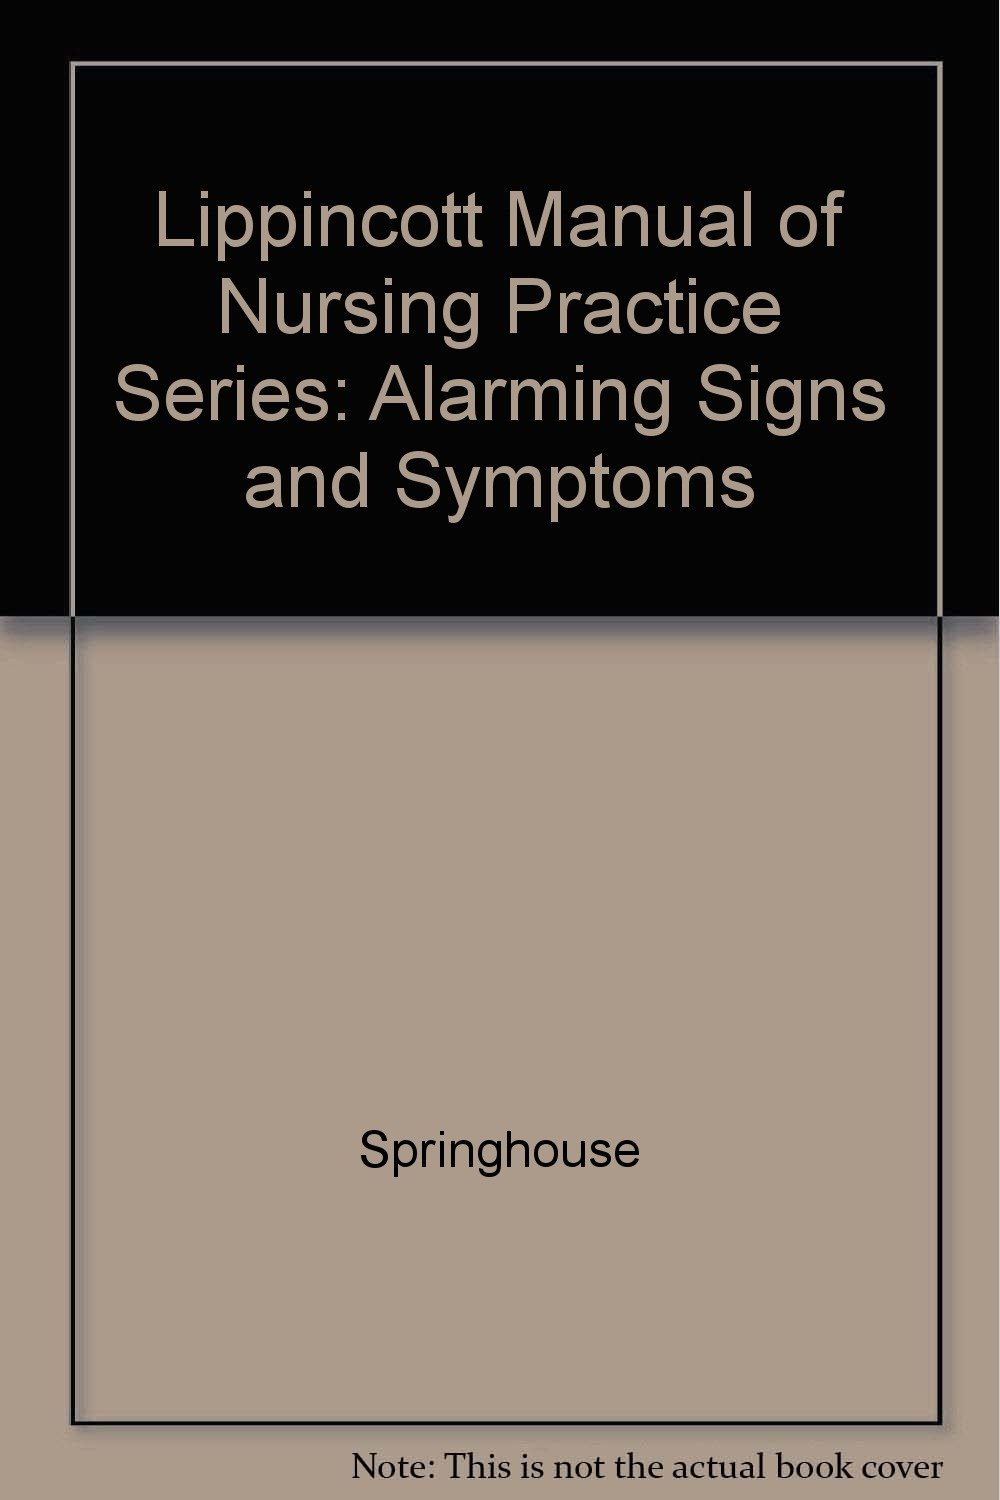 Lippincott Manual of Nursing Practice Series: Alarming Signs and Symptoms